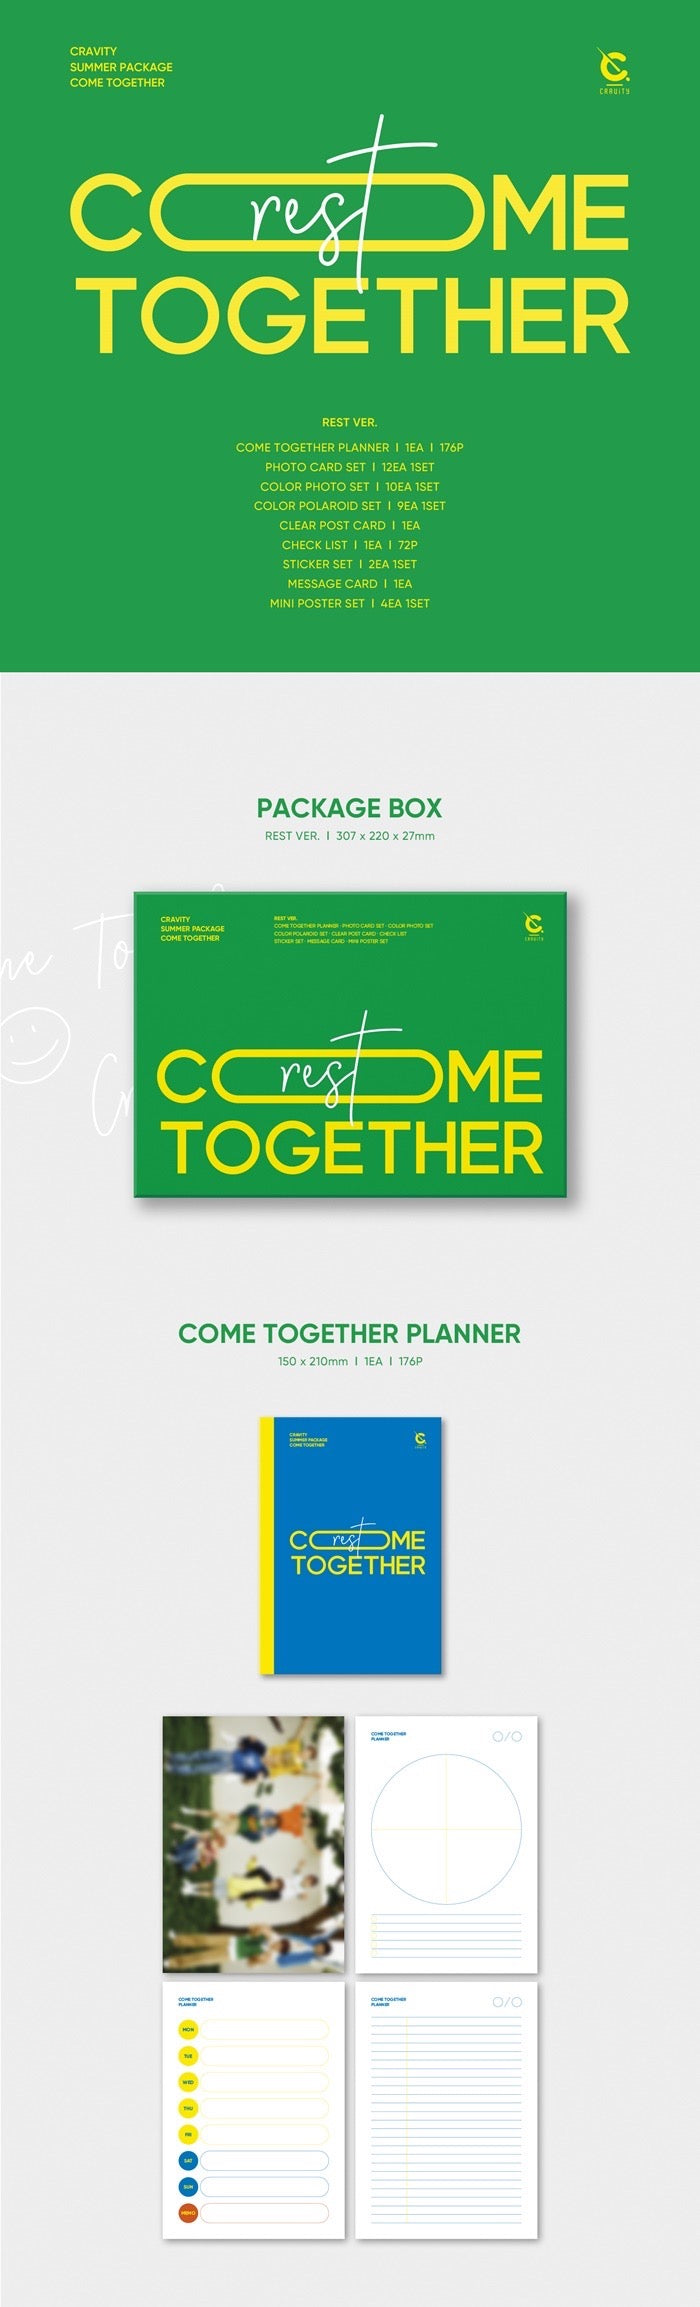 Cravity - Summer Package - Come Together - Rest Version - Pre-Order - J-Store Online